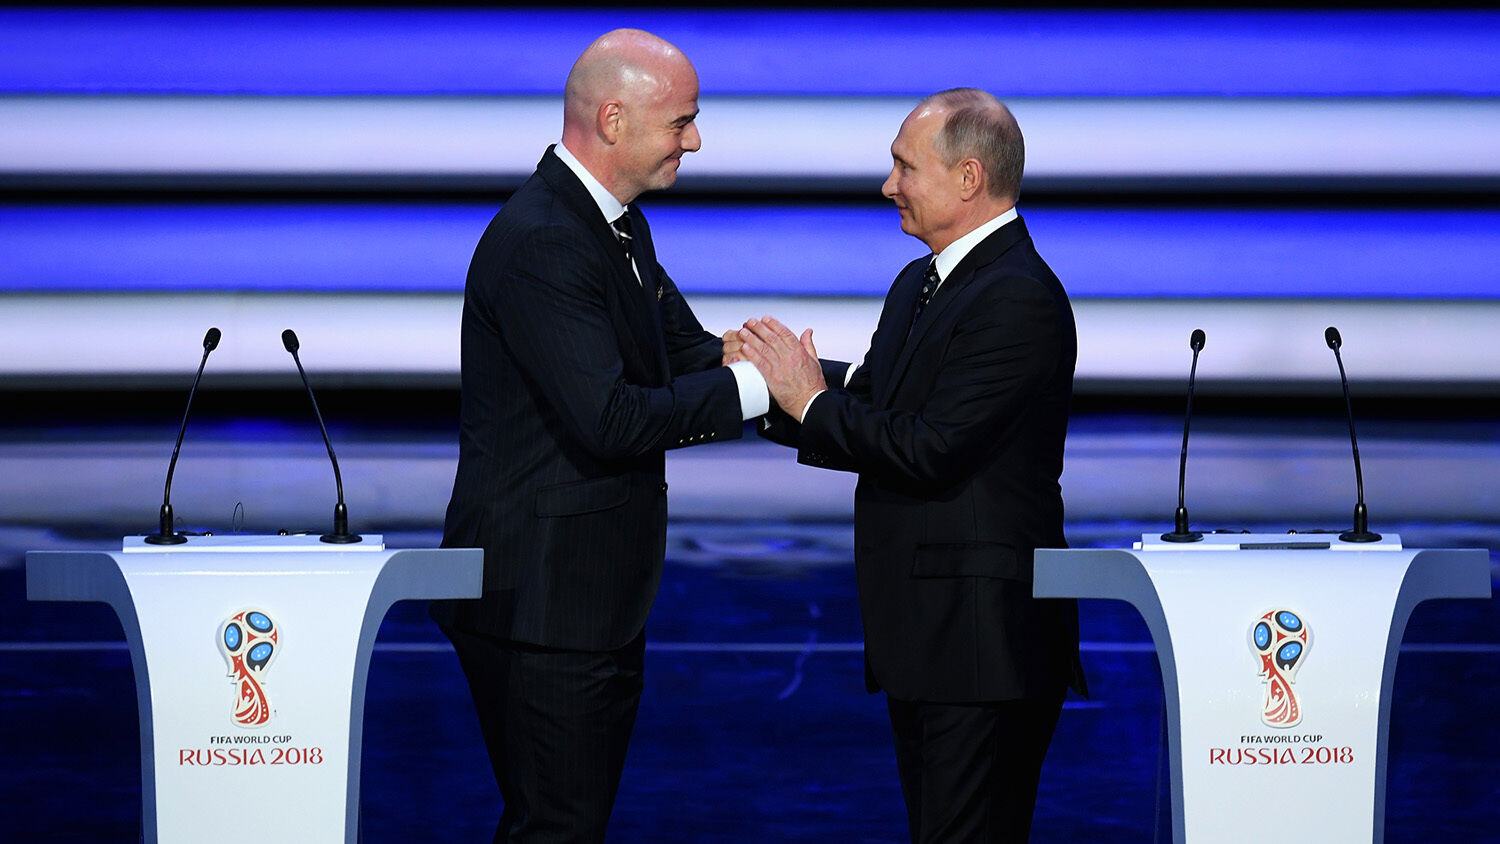 Vladimir Putin To Use 2018 World Cup To Score His Own Goals Thetrumpet Com